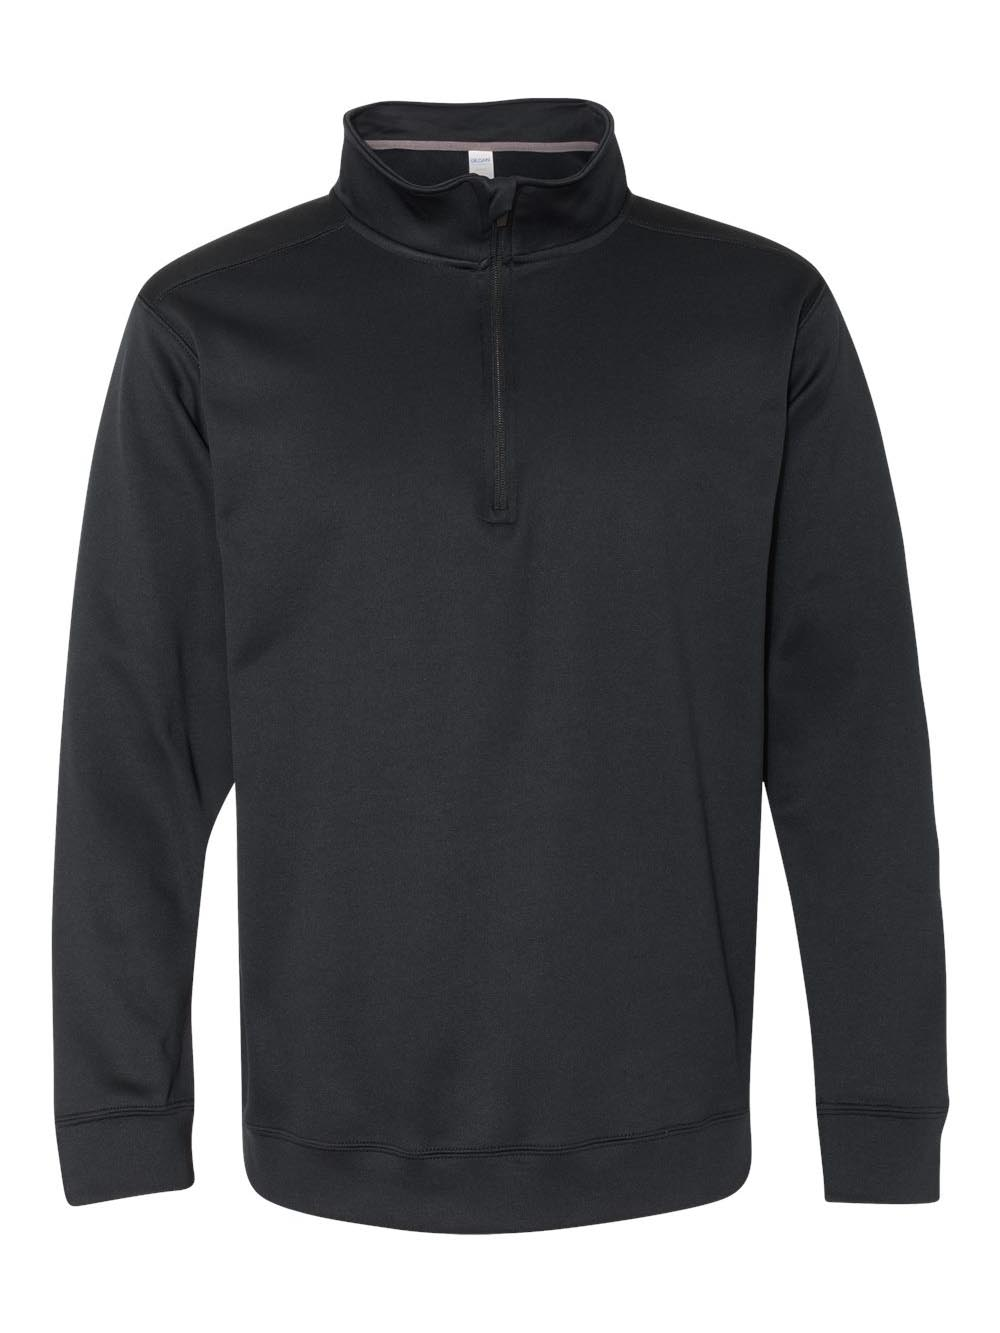 Gildan - Performance Tech Quarter-Zip Pullover Sweatshirt - 99800